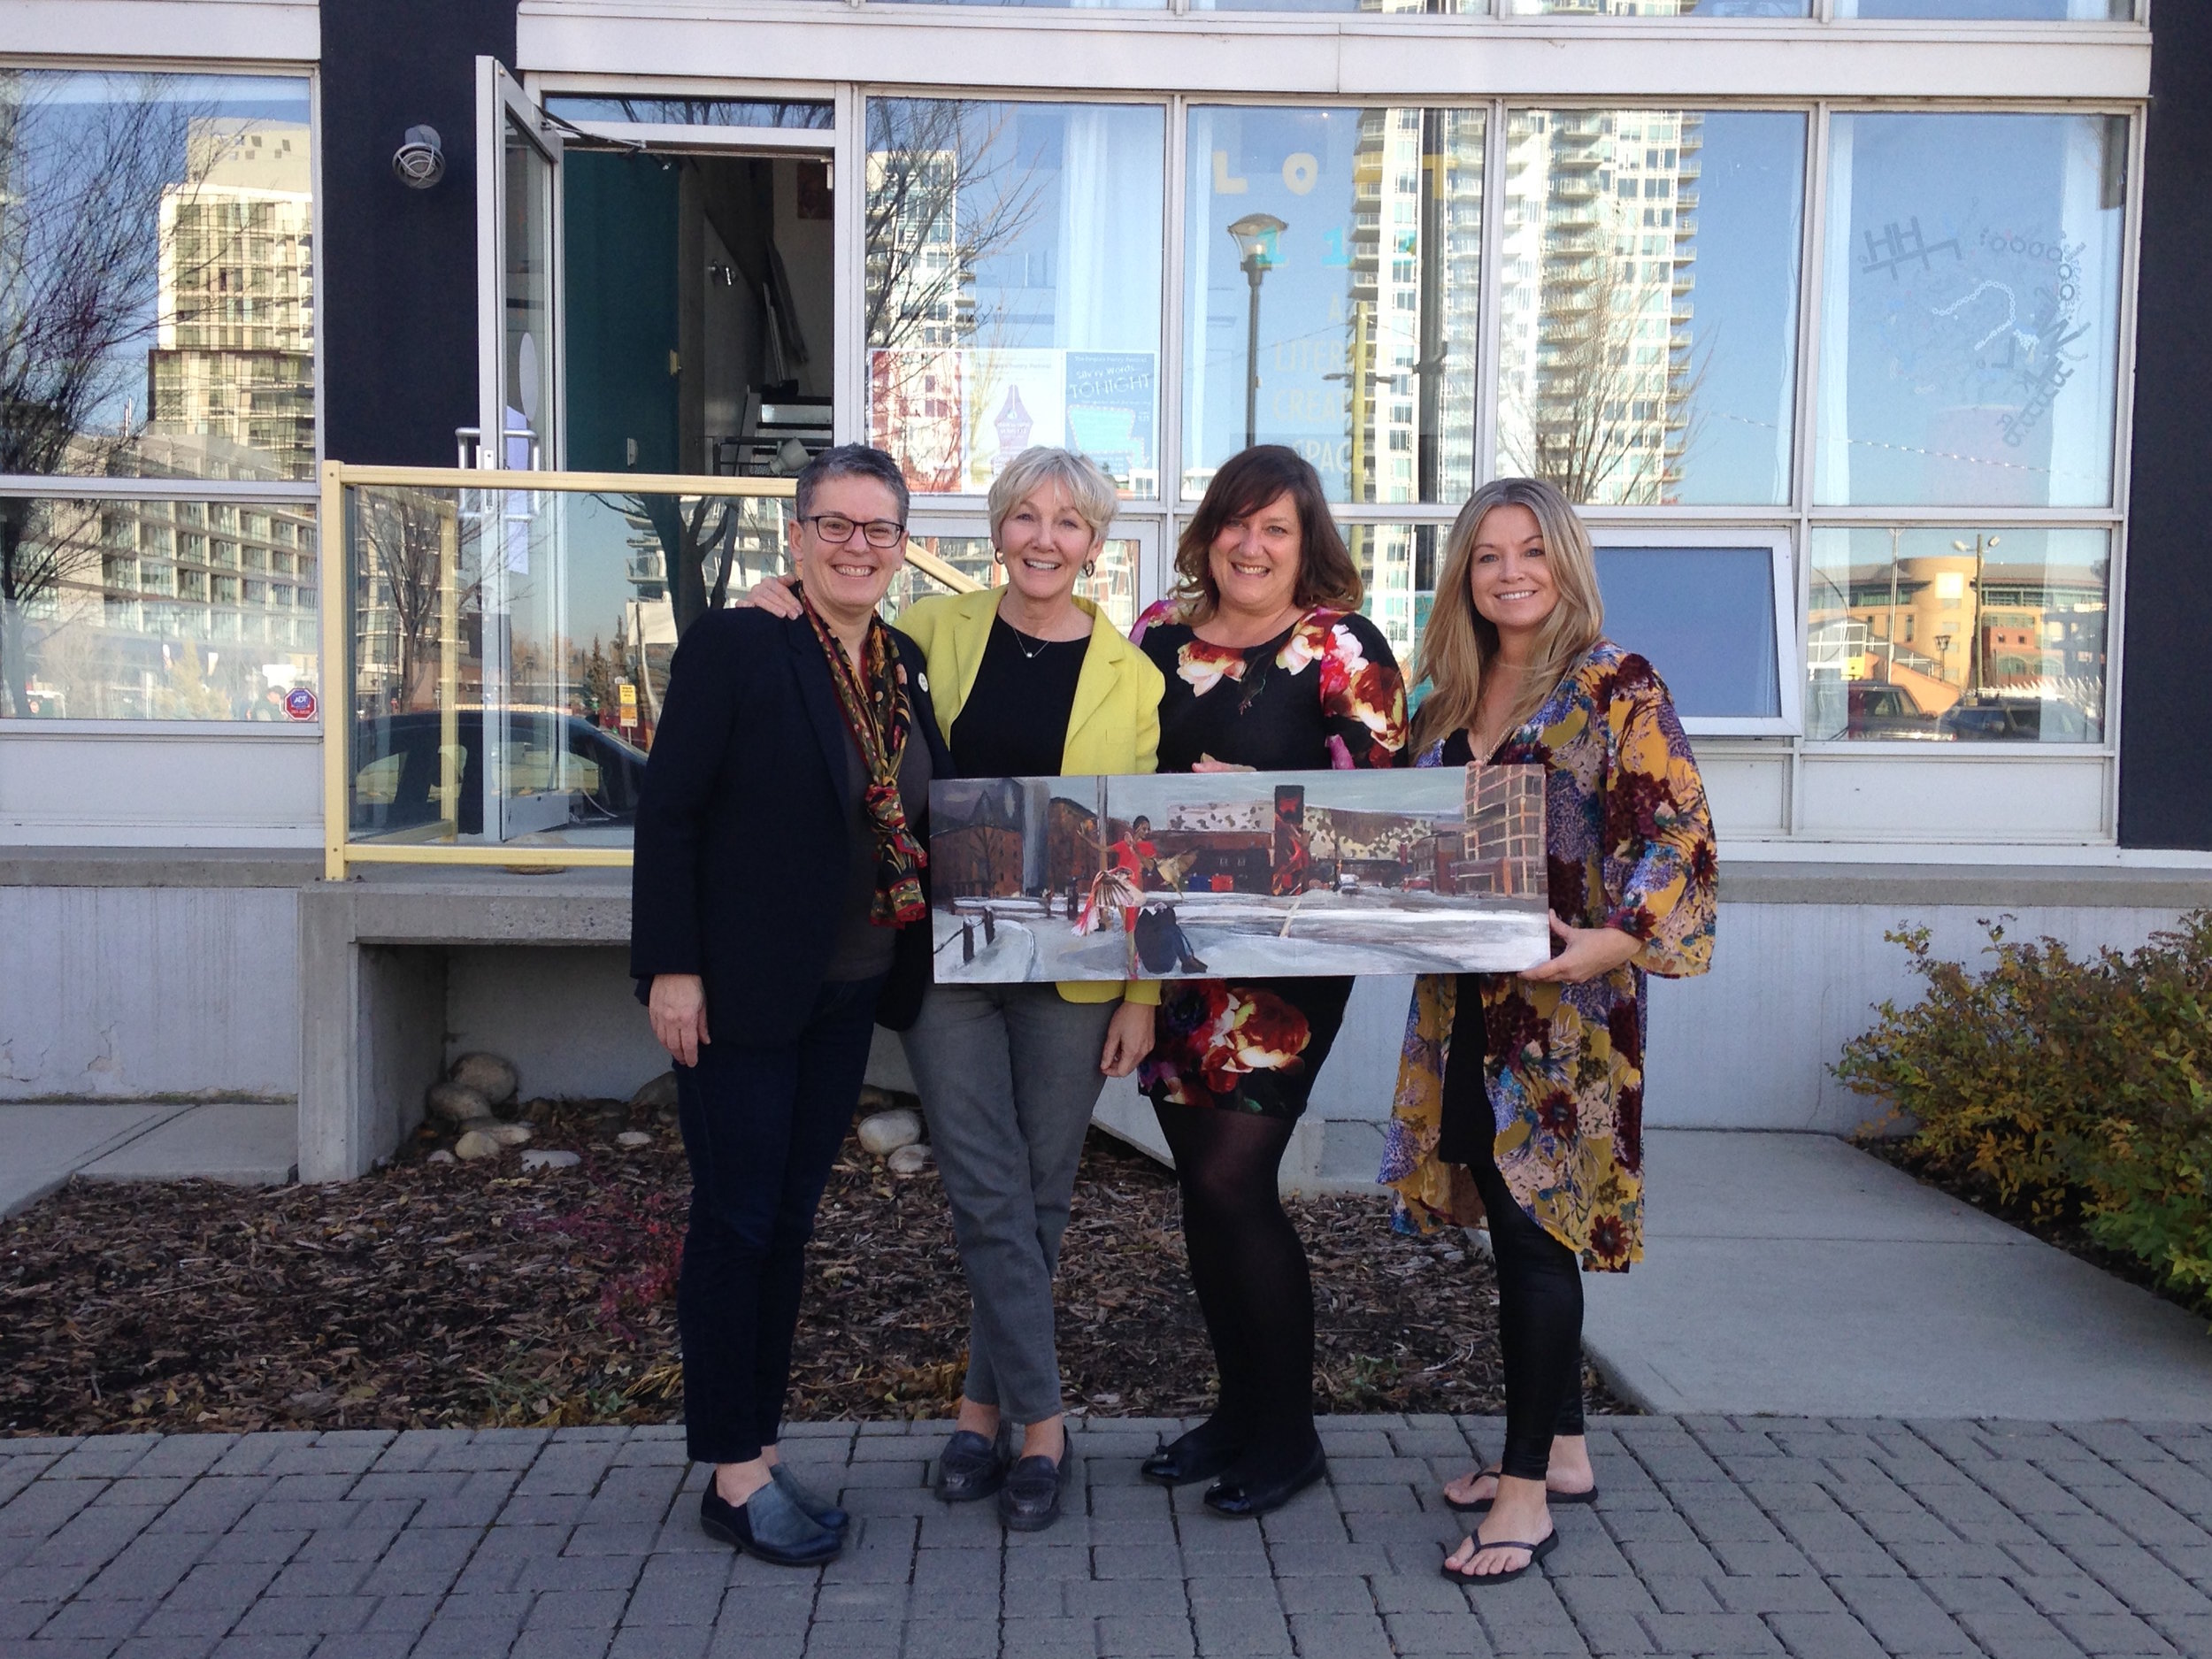 Standing in front of Loft 112, soon to be home to Calgary's first Bookmark, with poet Rosemary Griebel, Loft 112 director Lisa Murphy-Lamb, and painter Stacey Walyuchow.